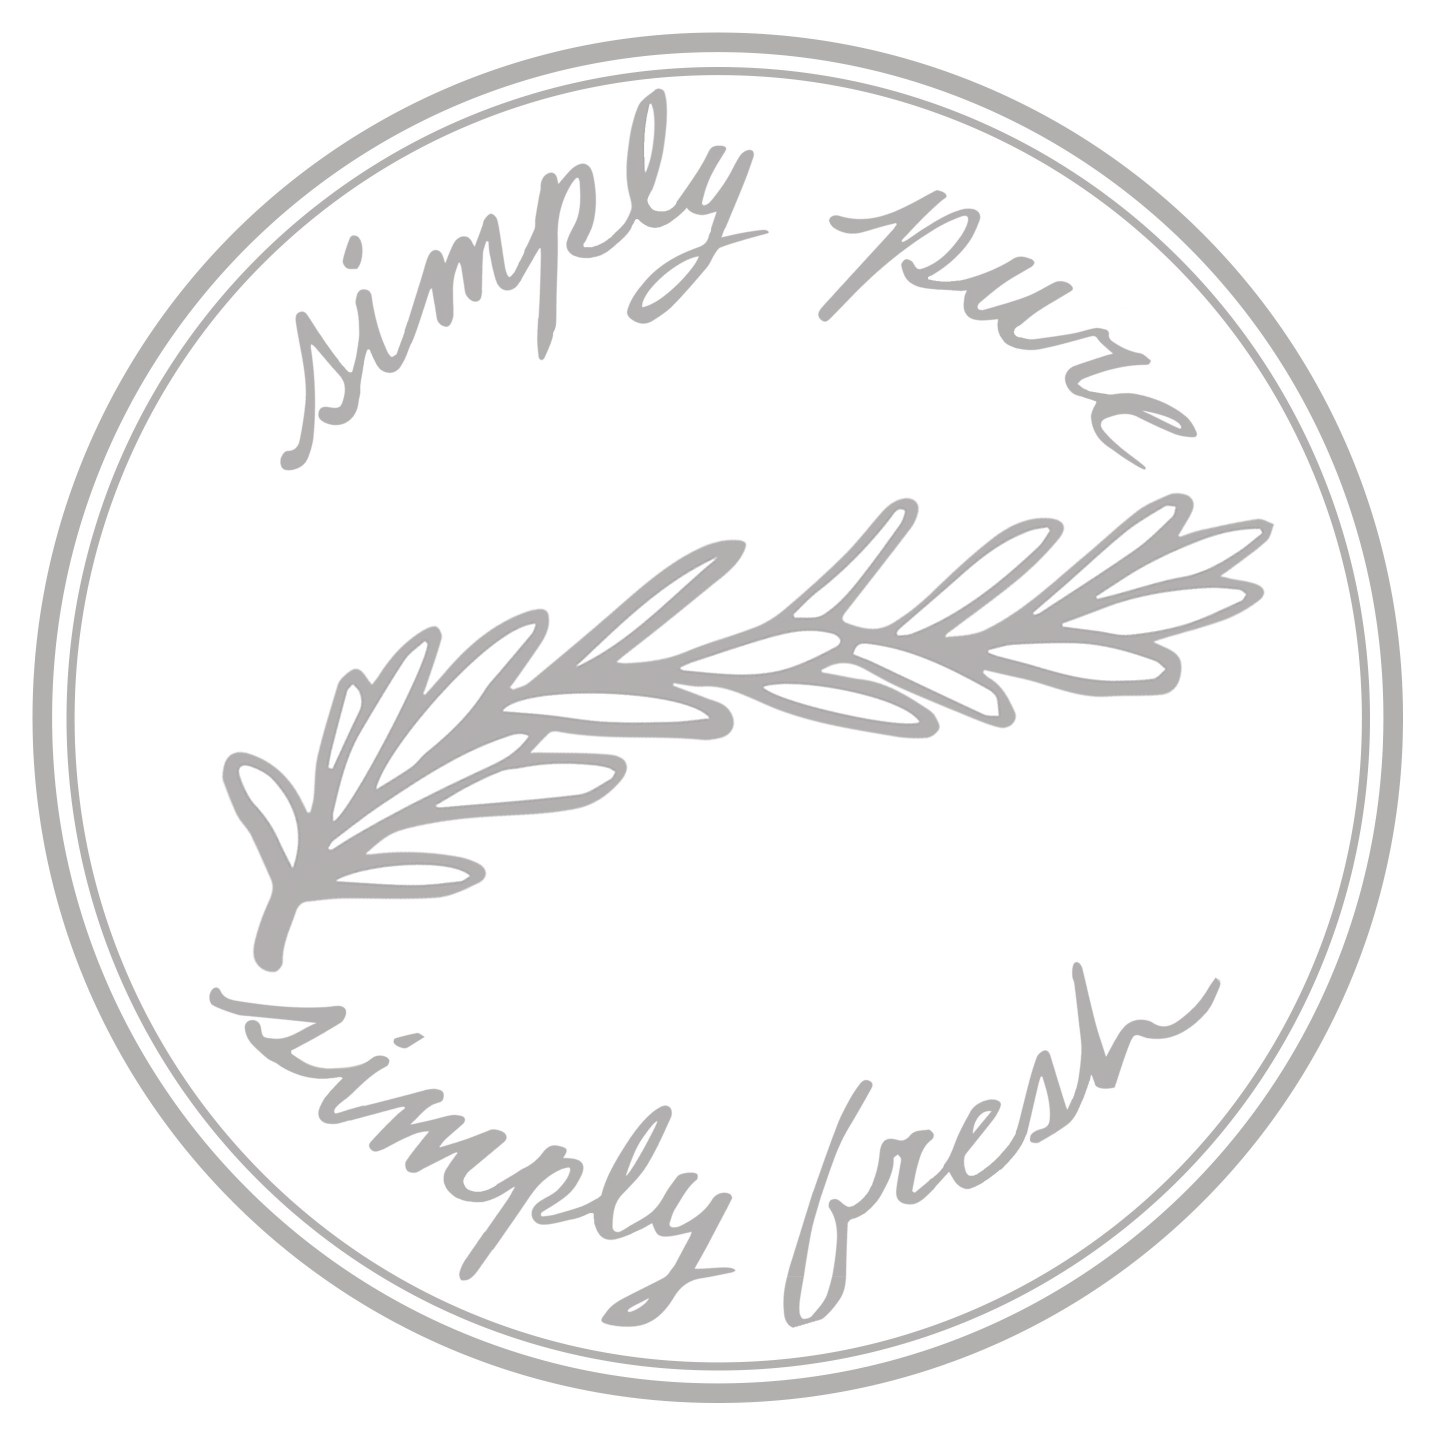 spsf_stamp_final